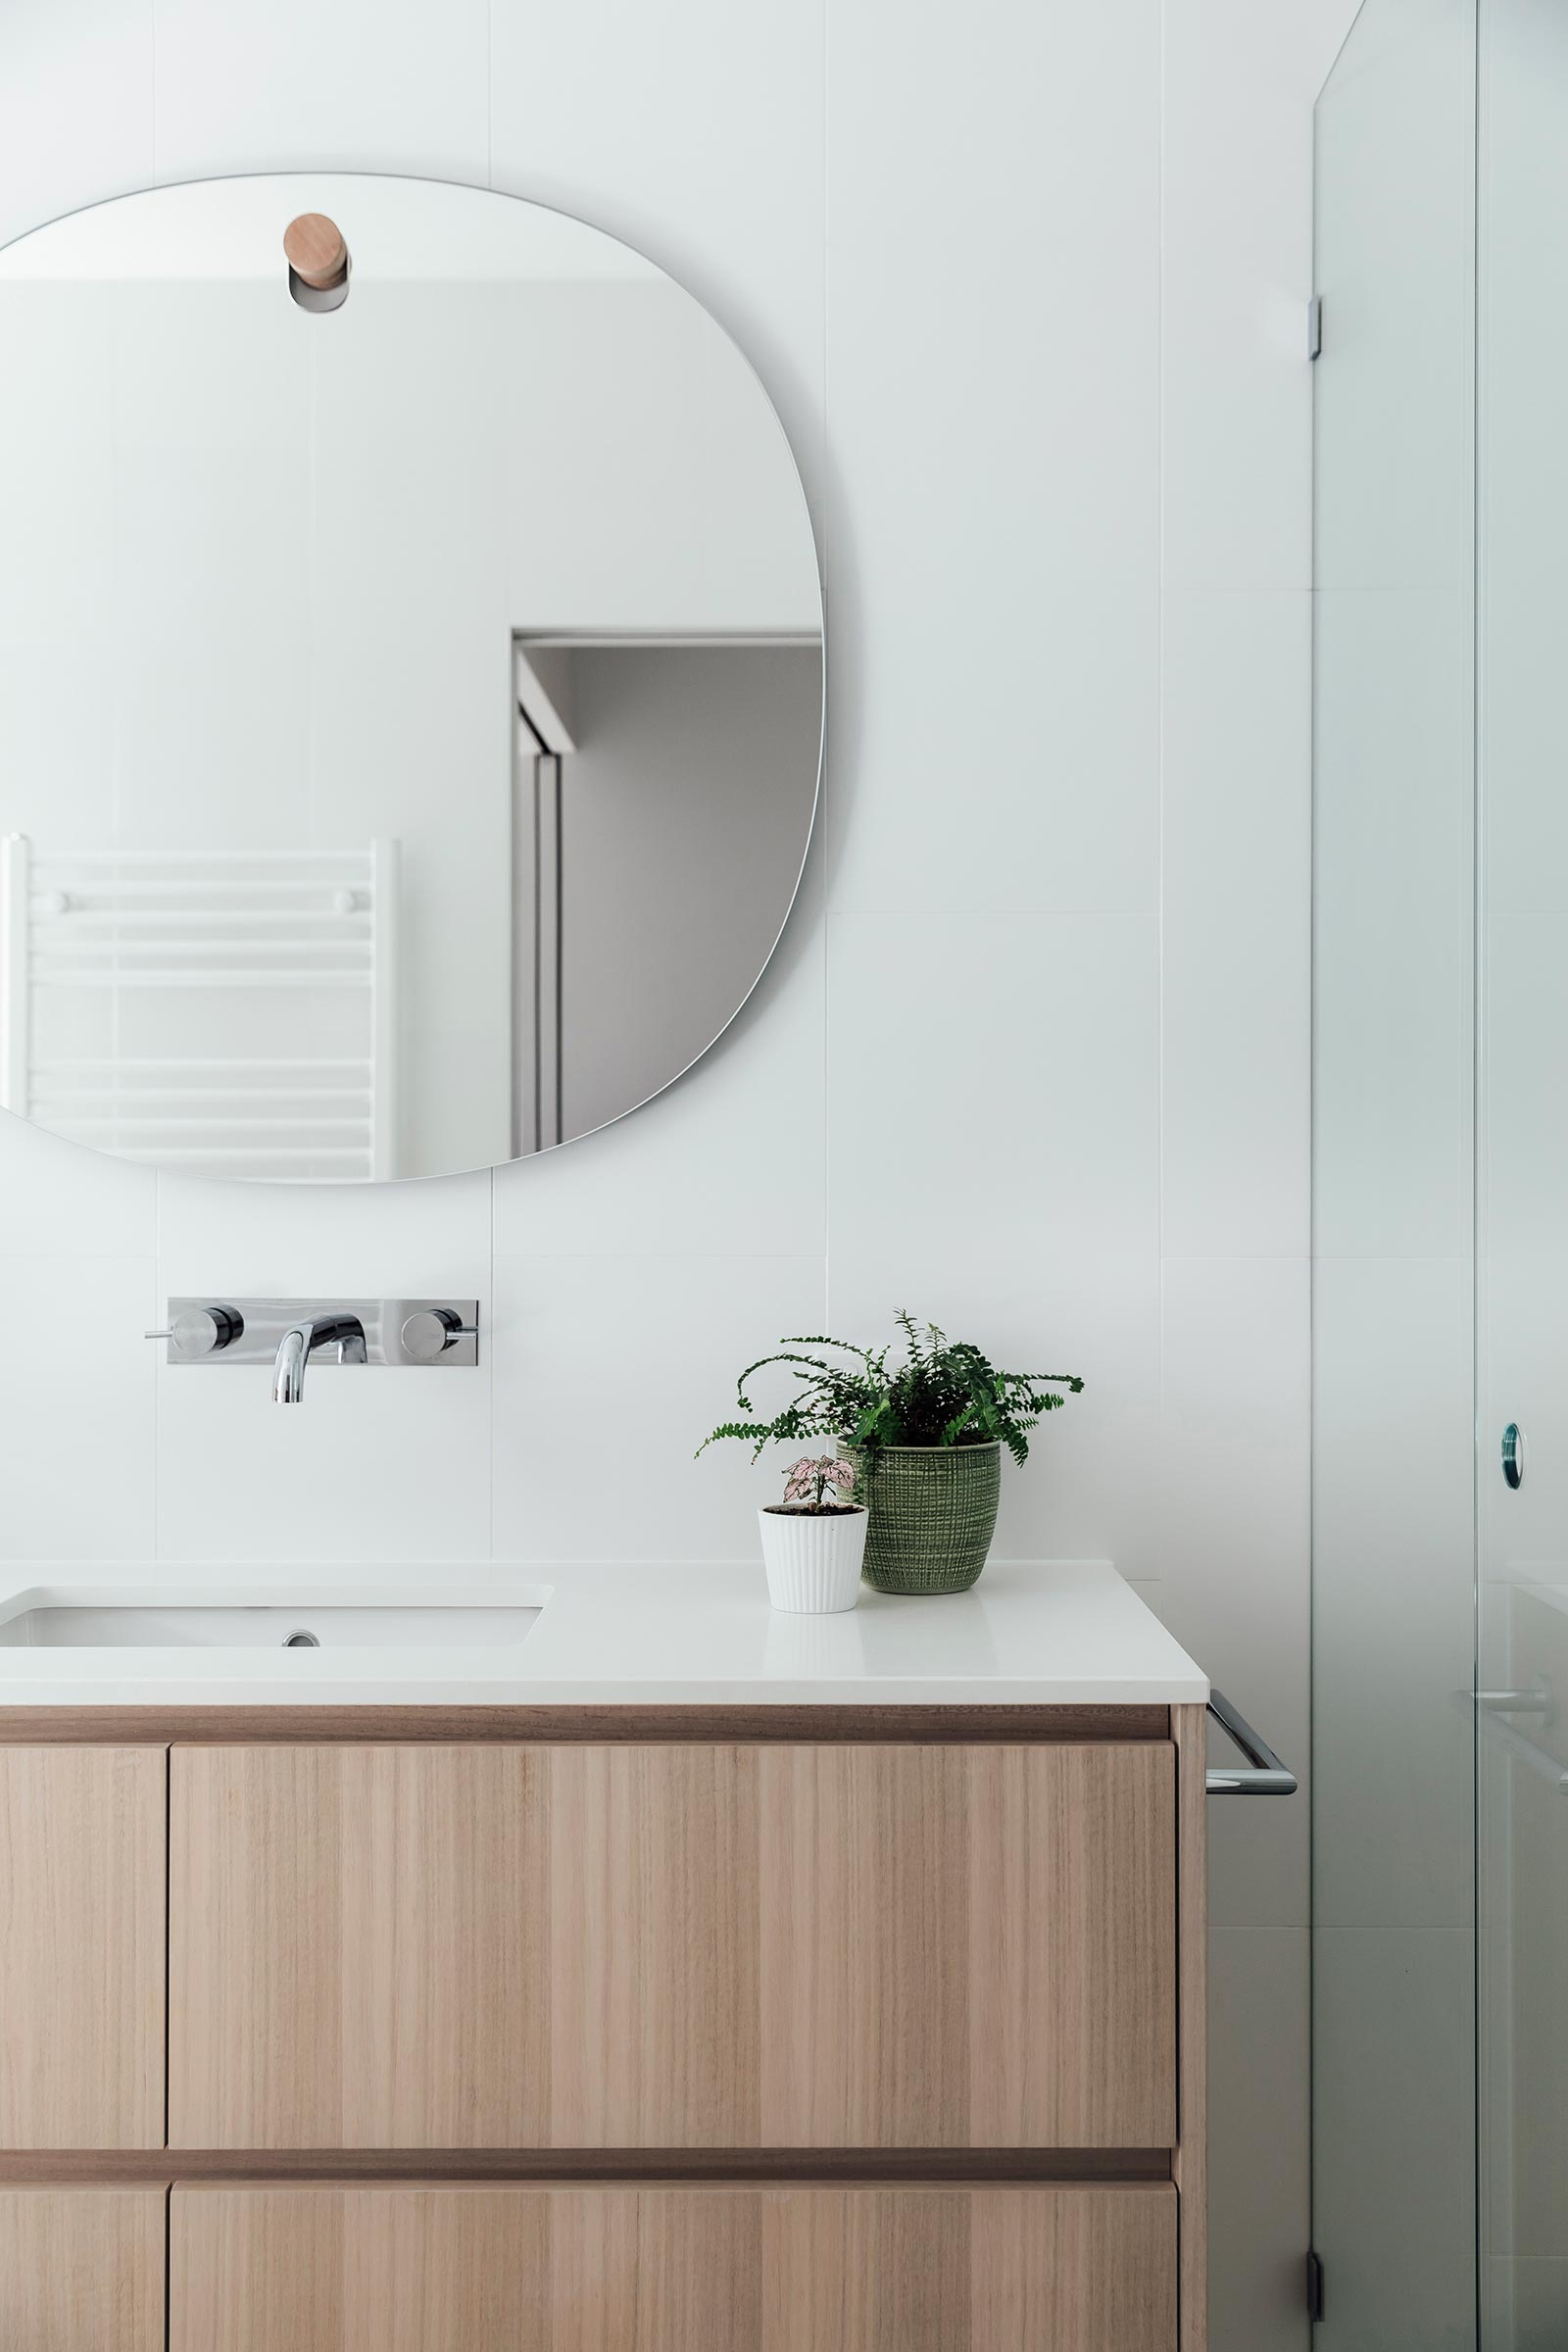 In this modern bathroom, while tiles cover the walls, while a rounded frameless mirror hangs from a simple wood hook, which also matches the wood vanity.